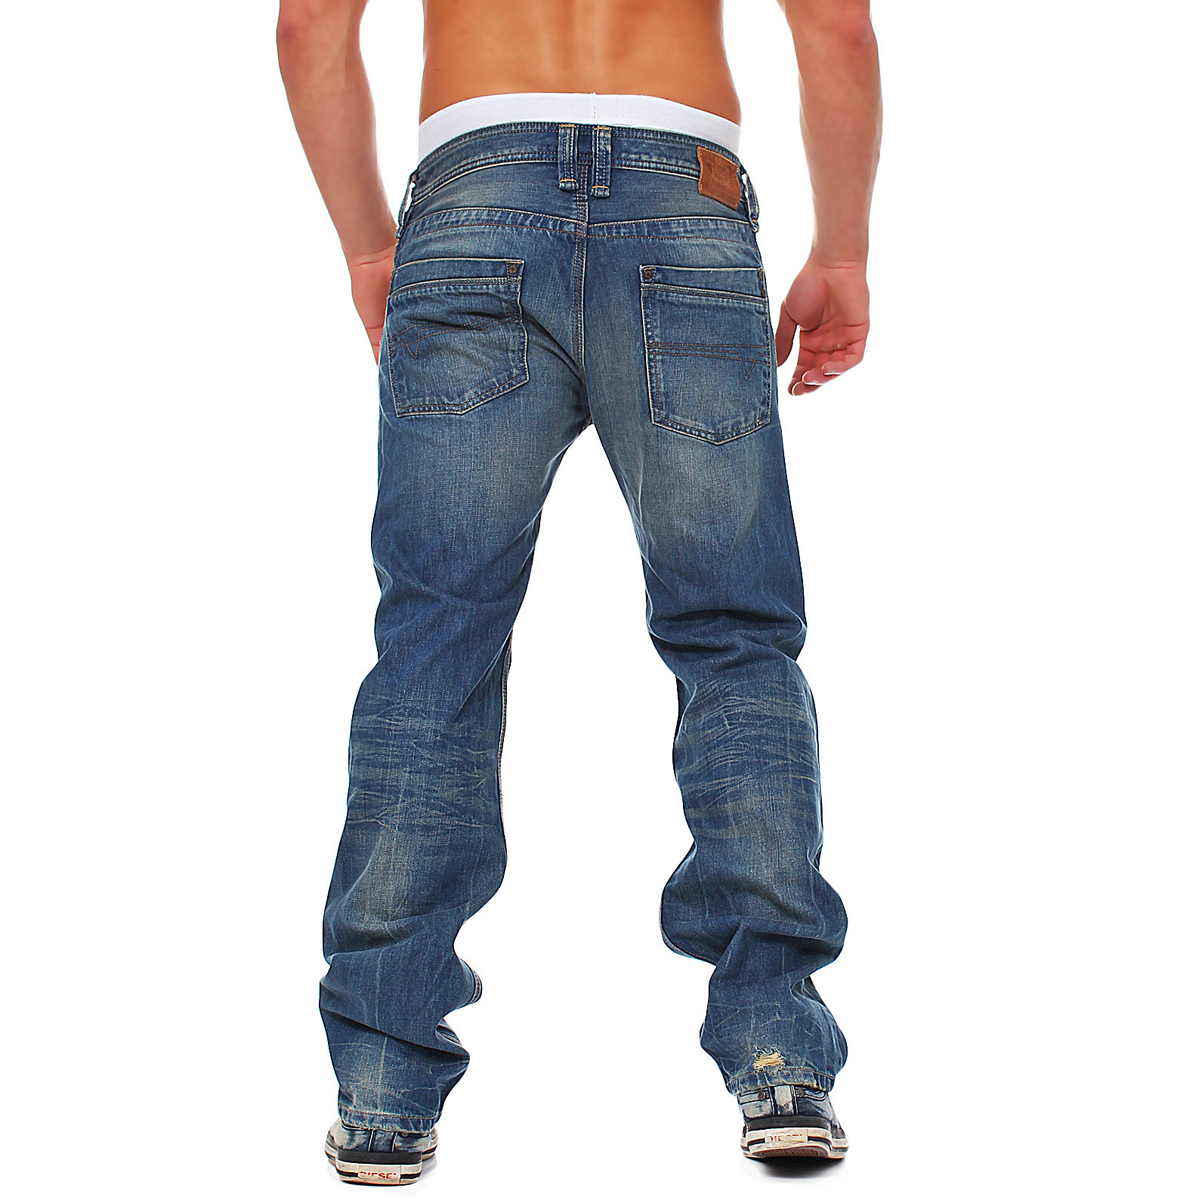 f7fbb20b Details about Diesel Jeans Timmen 0802E 802E Mens Pants Regular Straight  Blue USED LOOK NEW